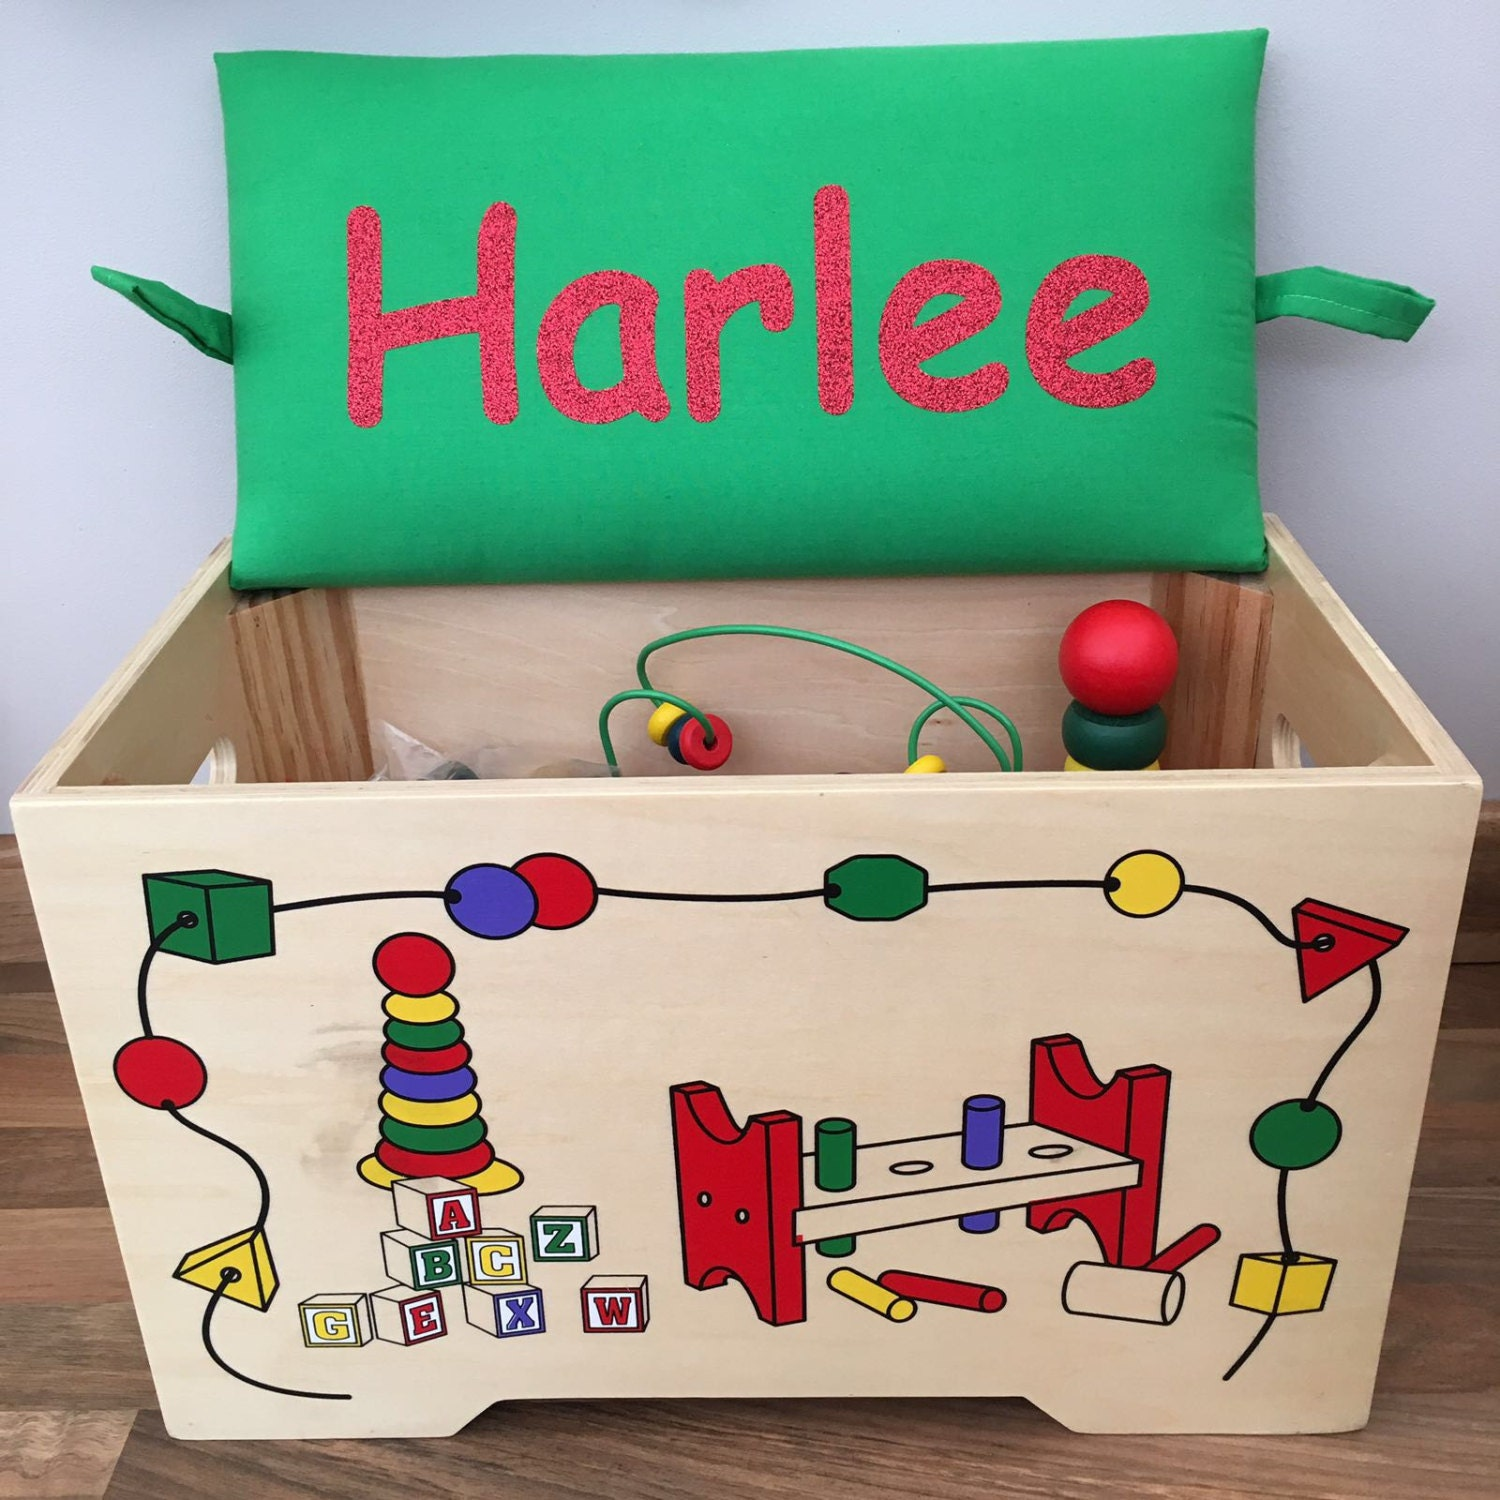 Personalised wooden toy chest with 6 piece toy set inside